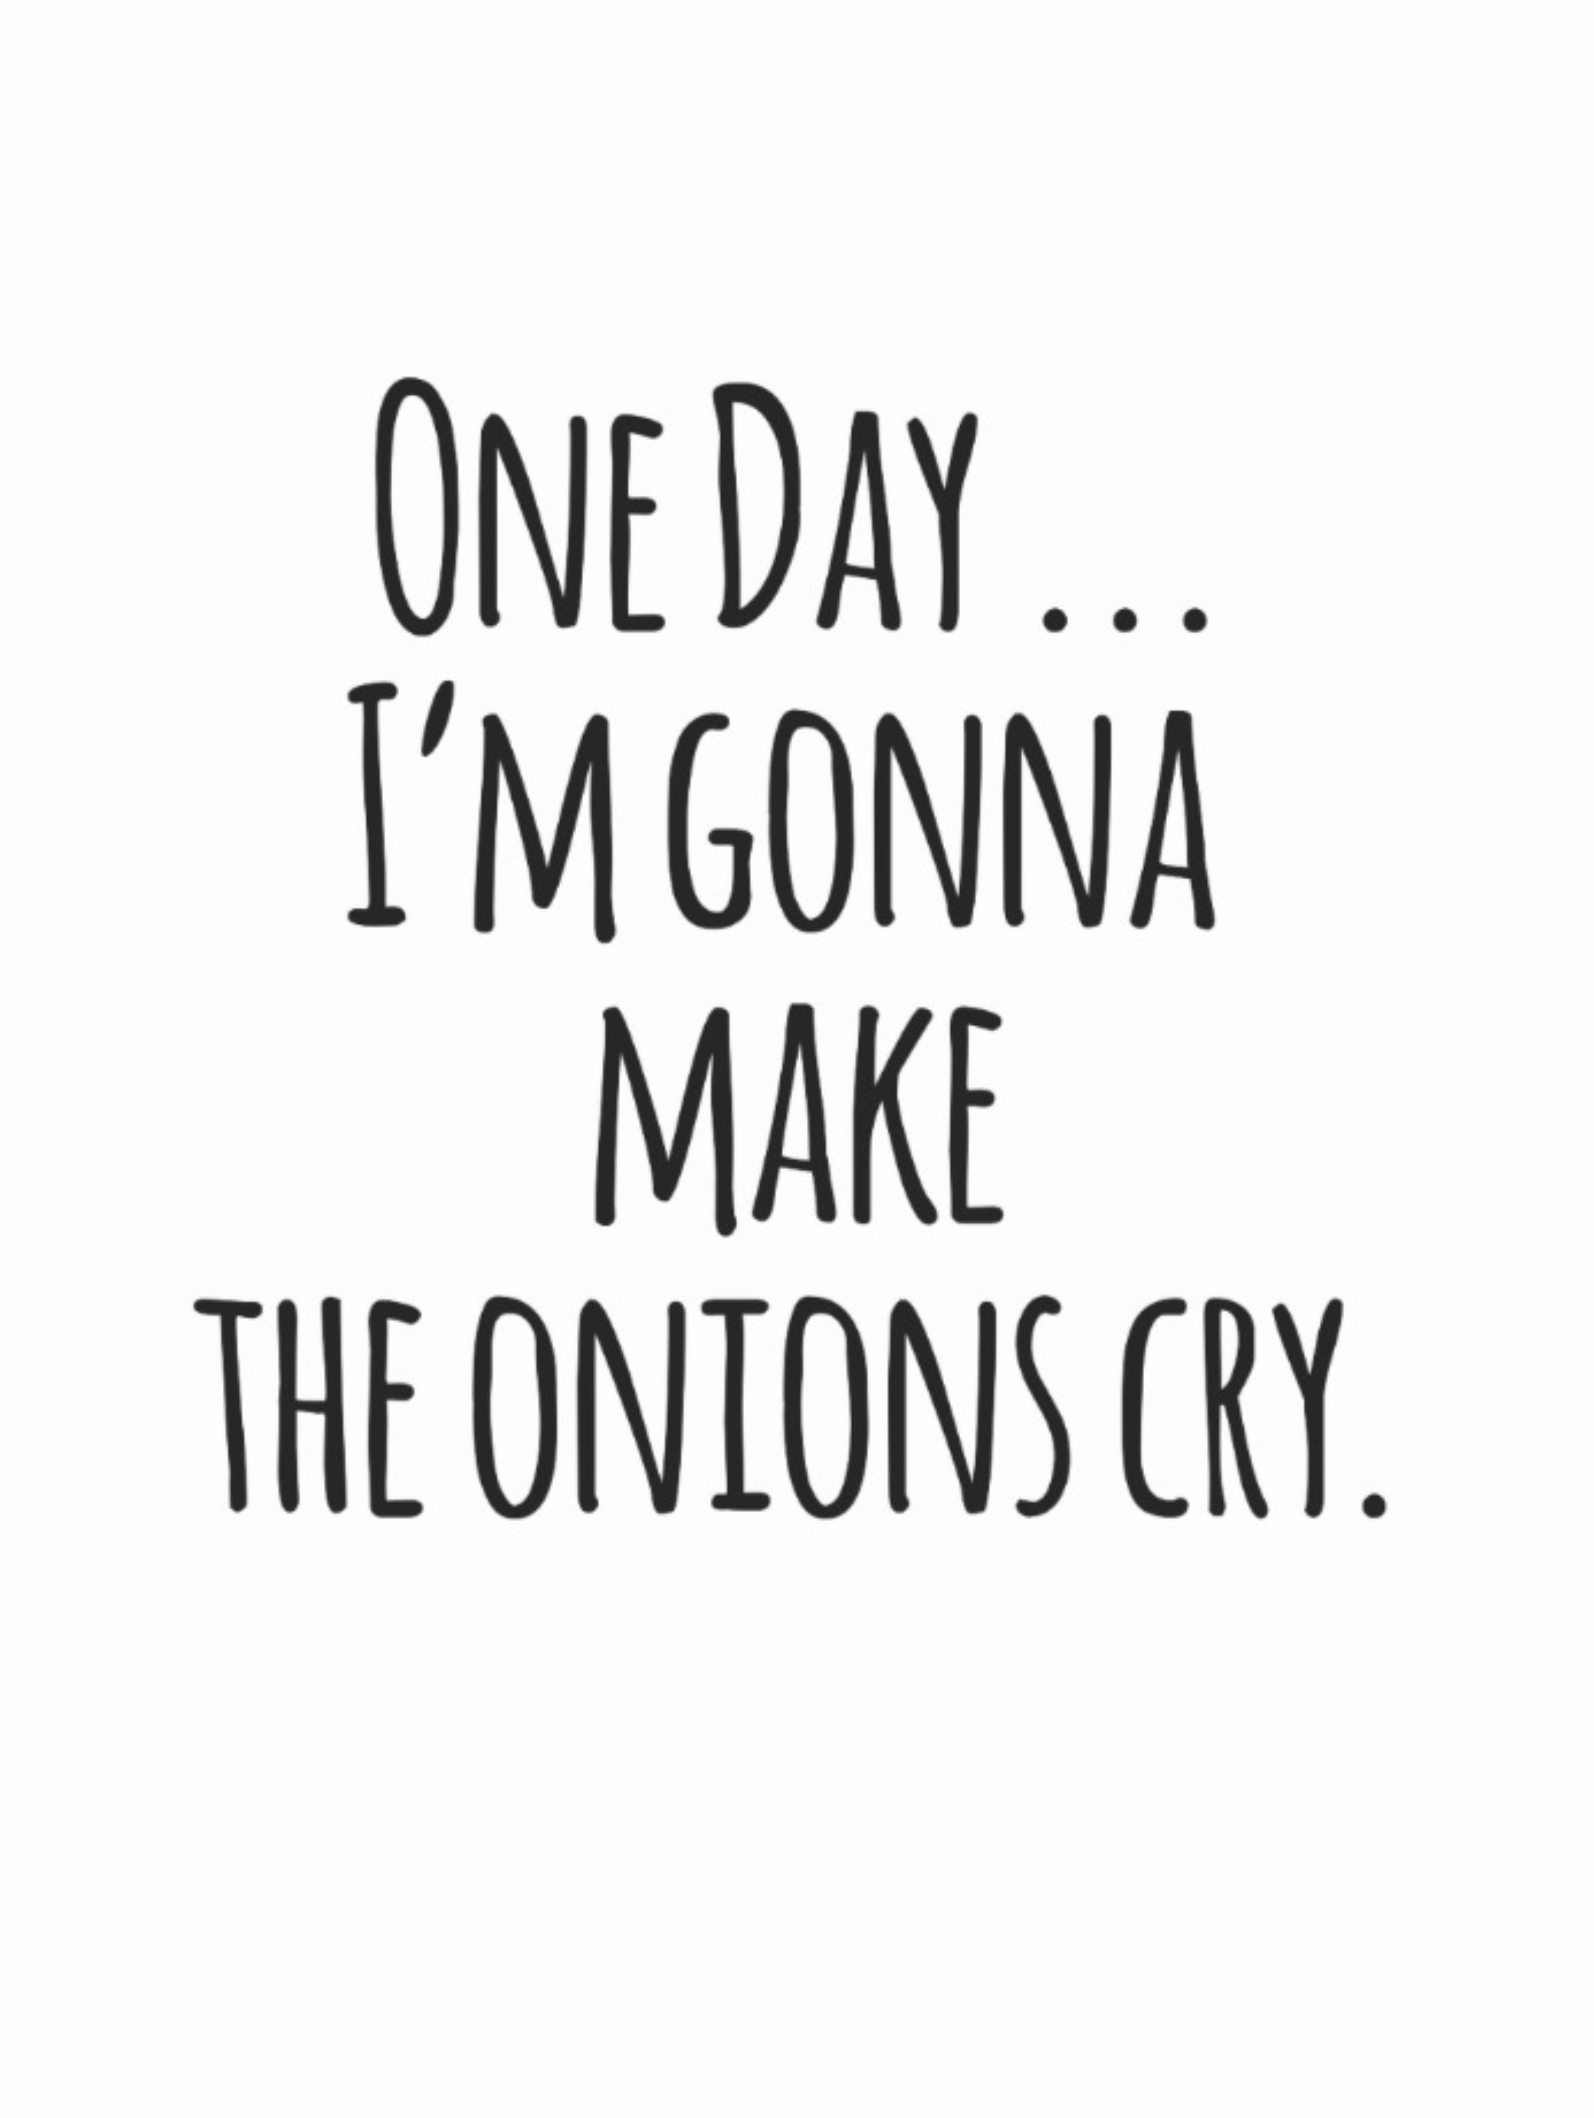 Pin By Mickj On Run Funny Health Quotes Cooking Quotes Humor Pretty Quotes